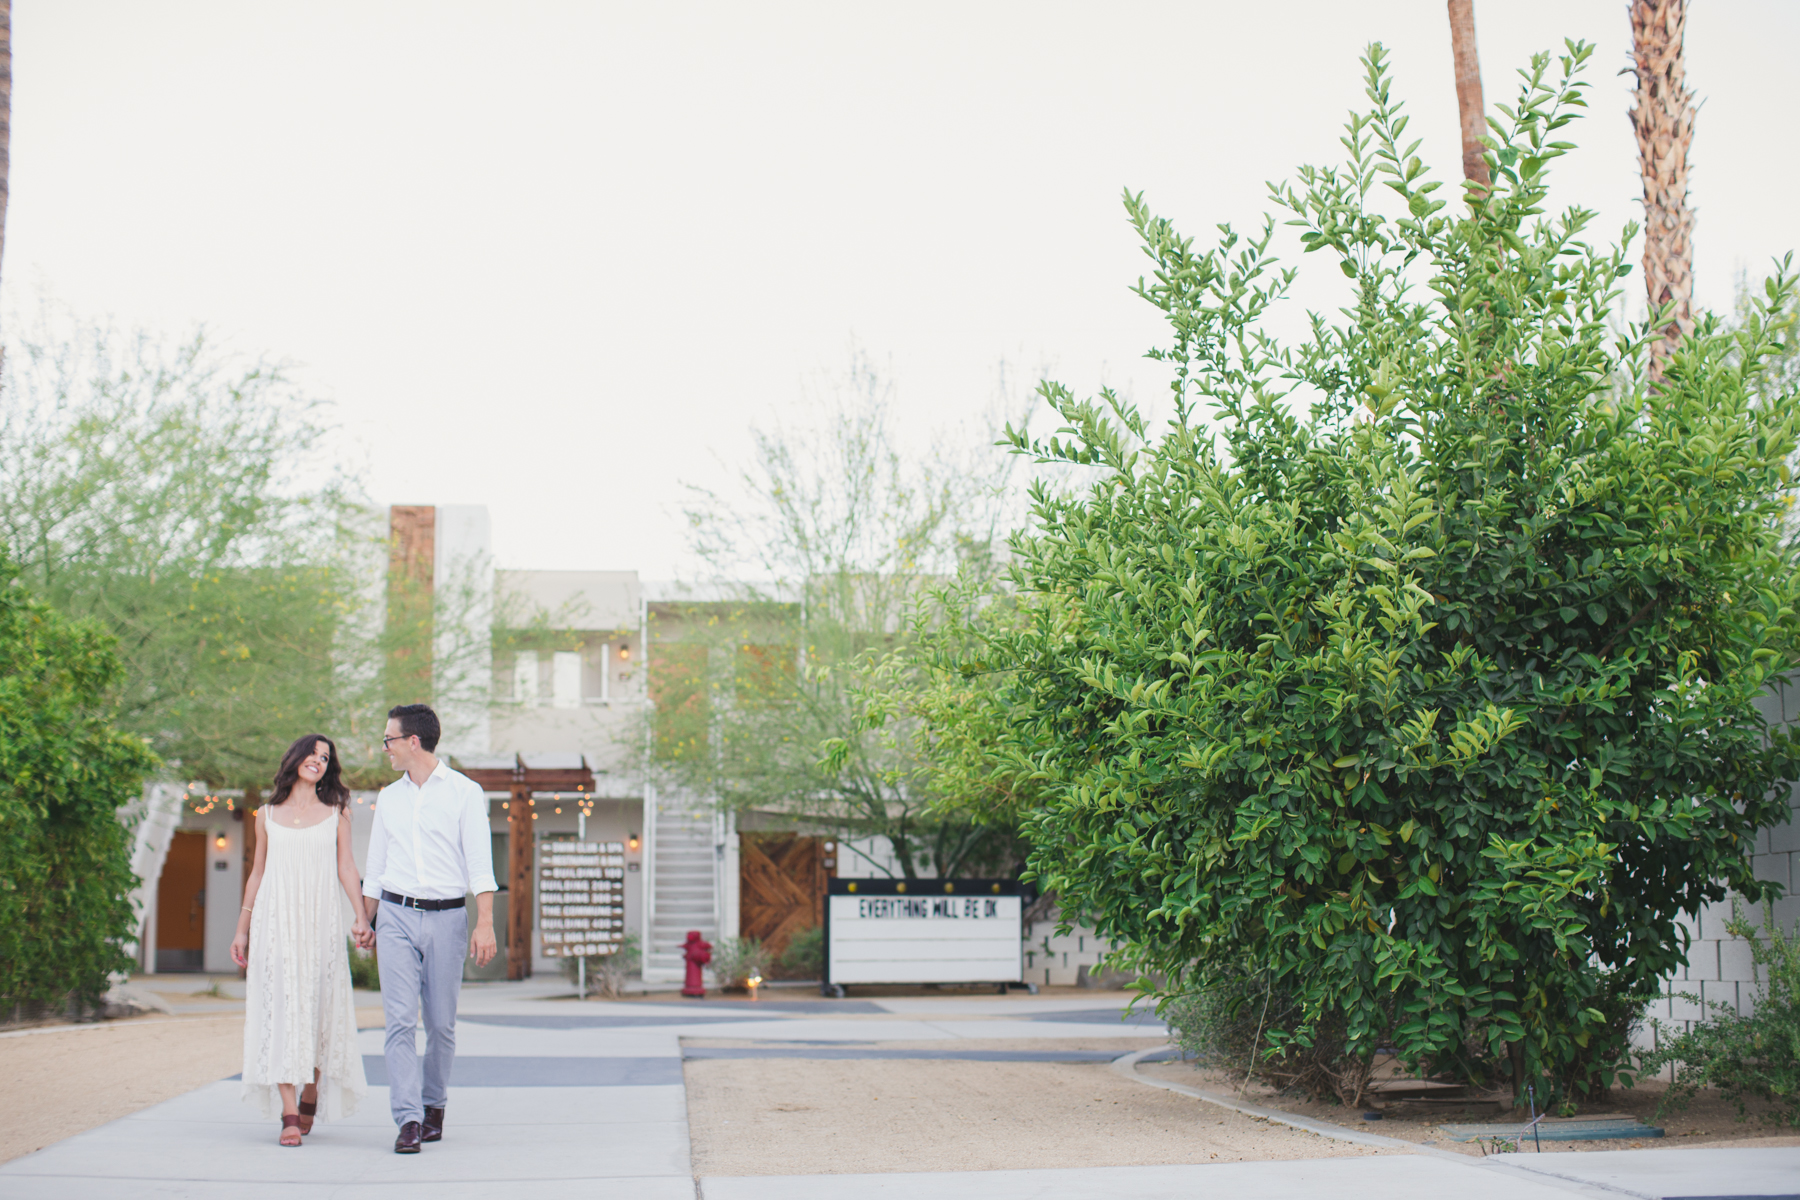 All_Days_Wonder_Palm_Springs_Engagement-44.jpg